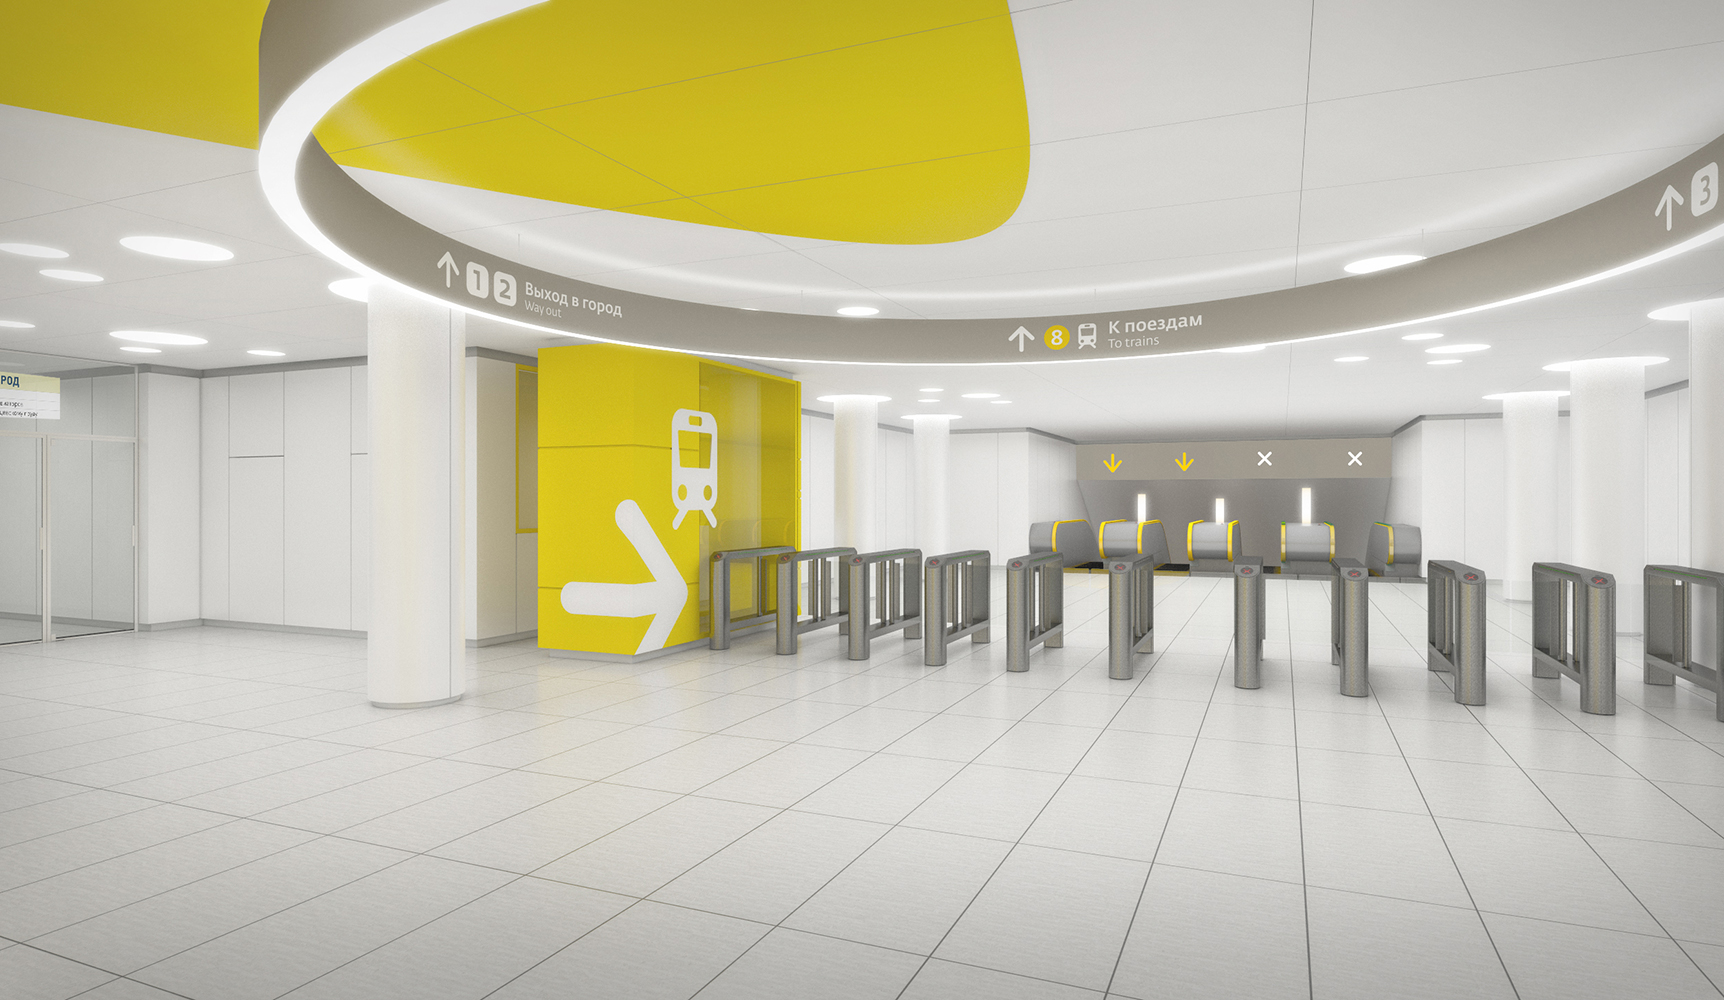 interior.-hall-for-ticket-booths_03.jpg